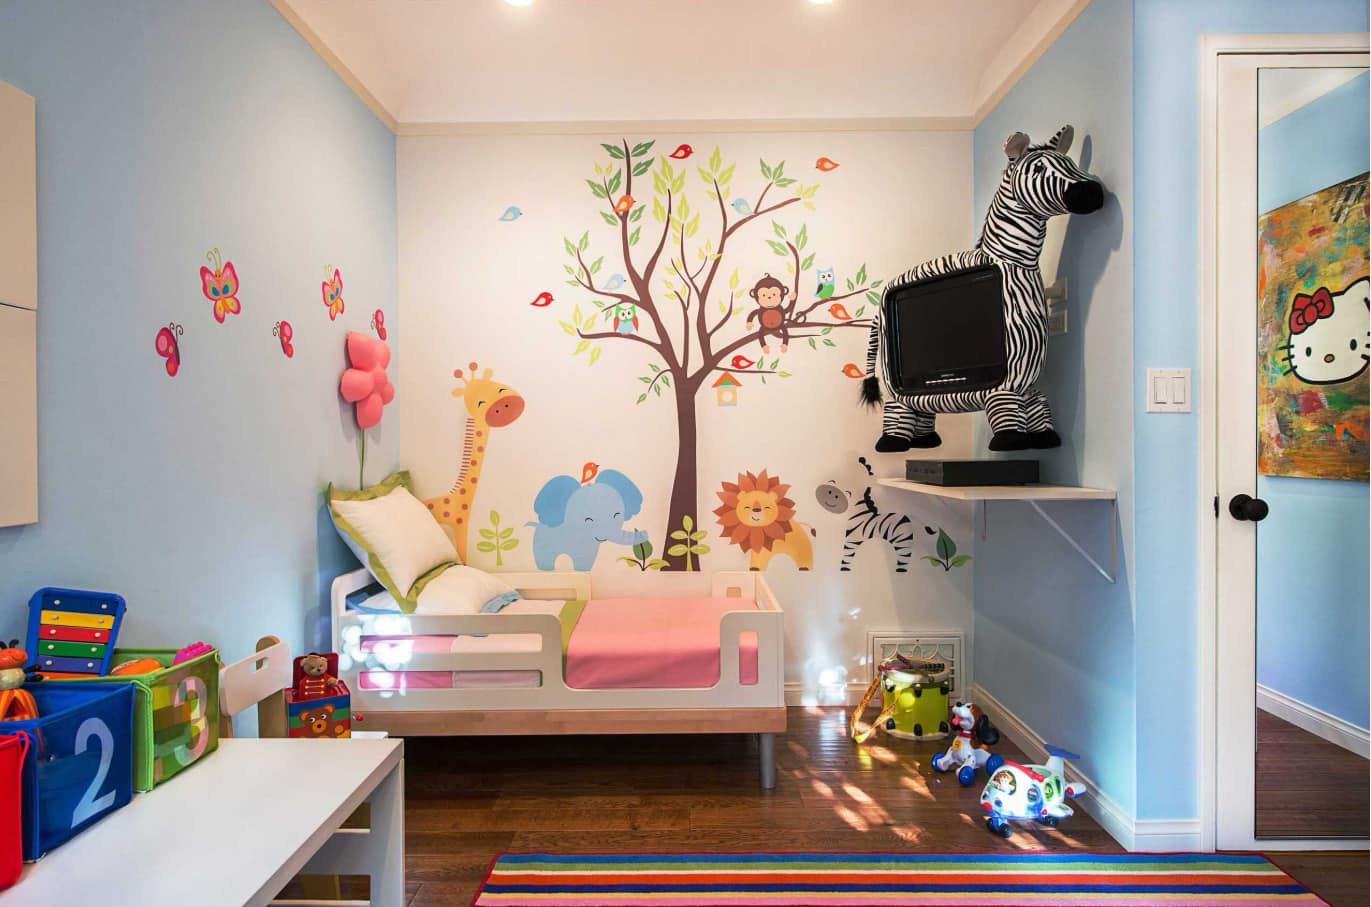 Animalistic decoration for the colorful painted kids room